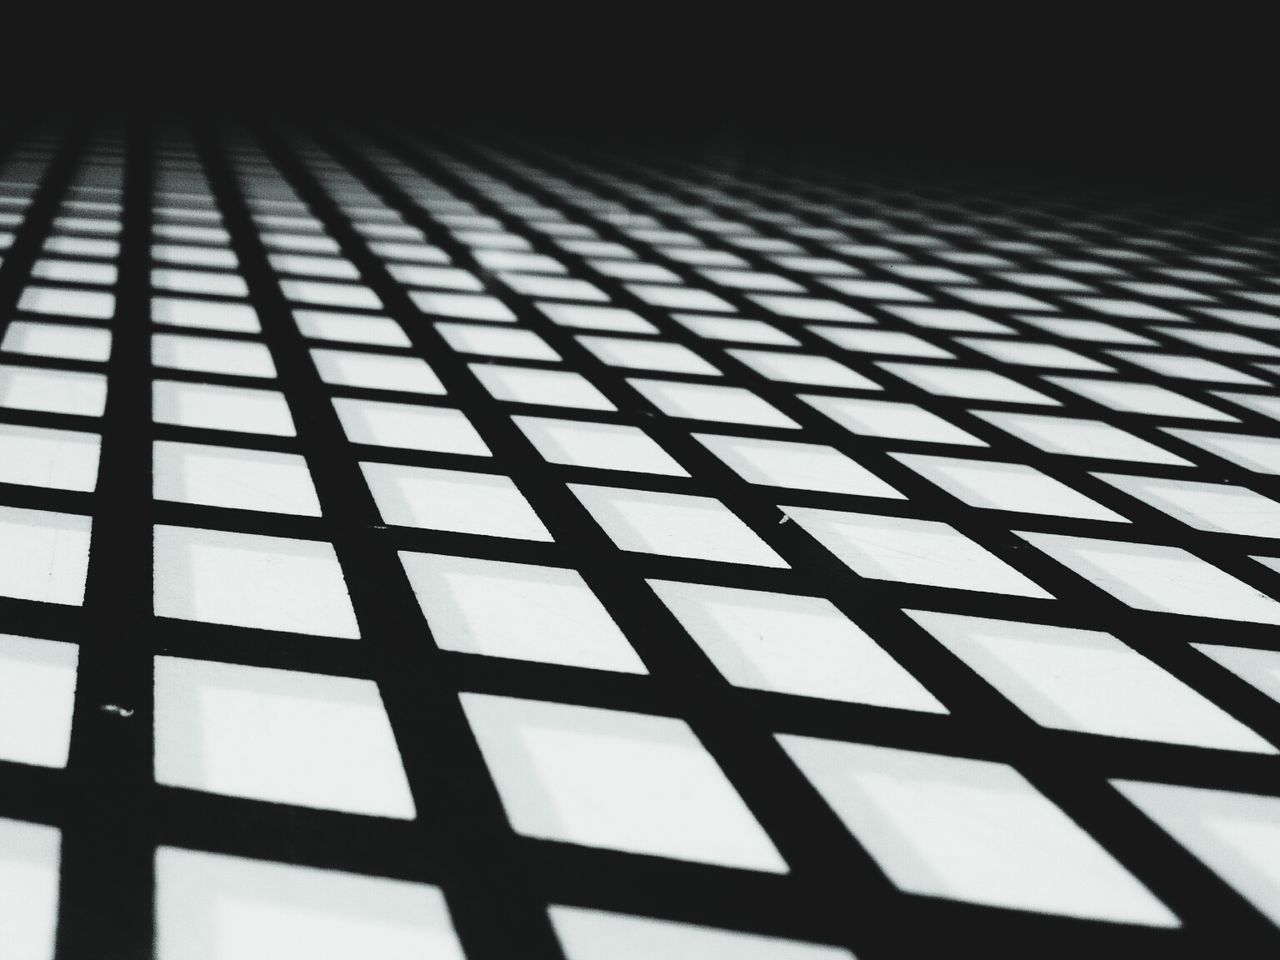 Grid Pattern Black And White Geometric Shapes